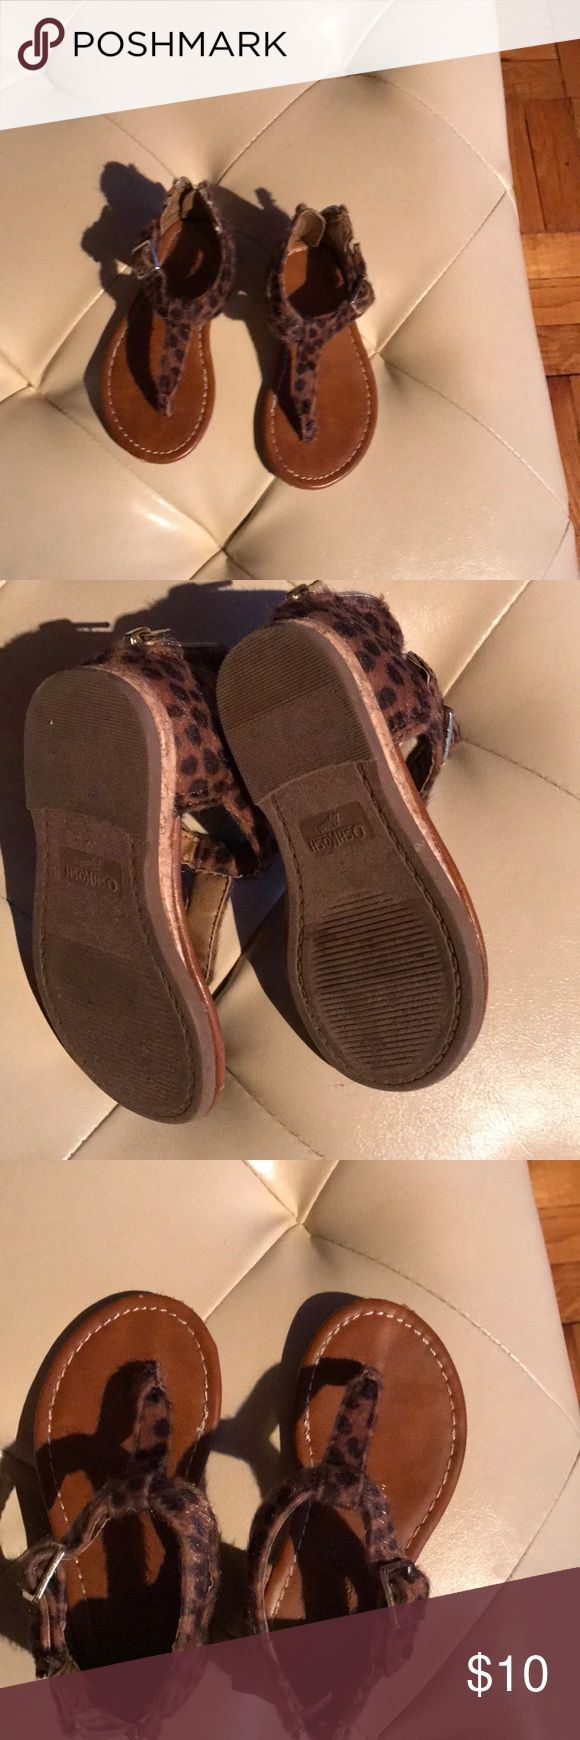 Oshkosh leopard sandals Toddler sandals size 6 good condition Shoes Sandals & Flip Flops